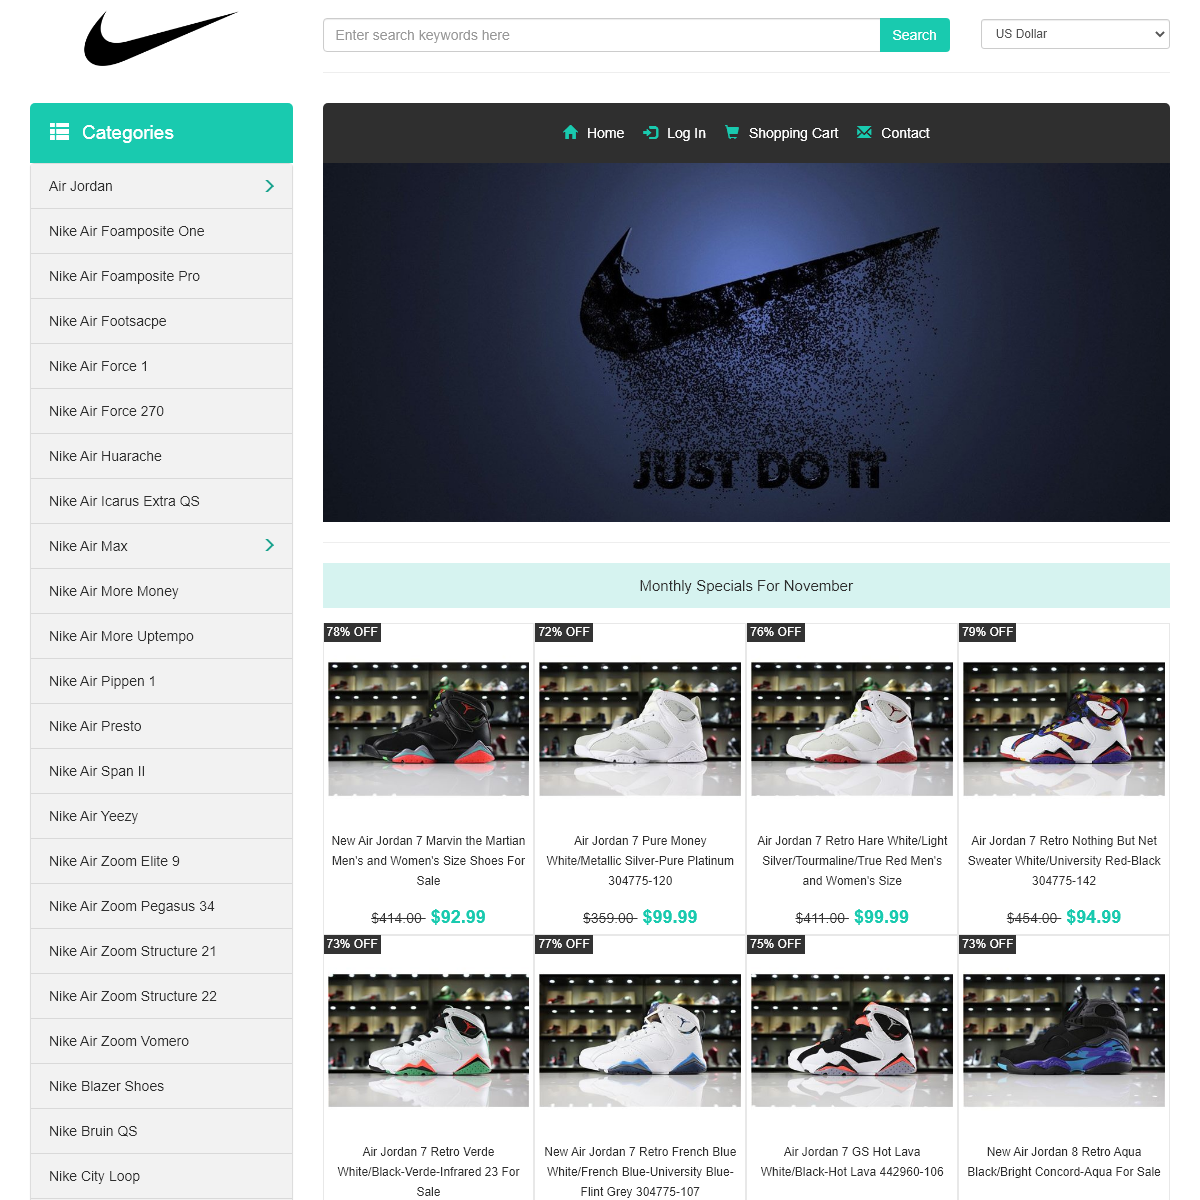 Nike Factory - Nike Factory Outlet Store - Official Site